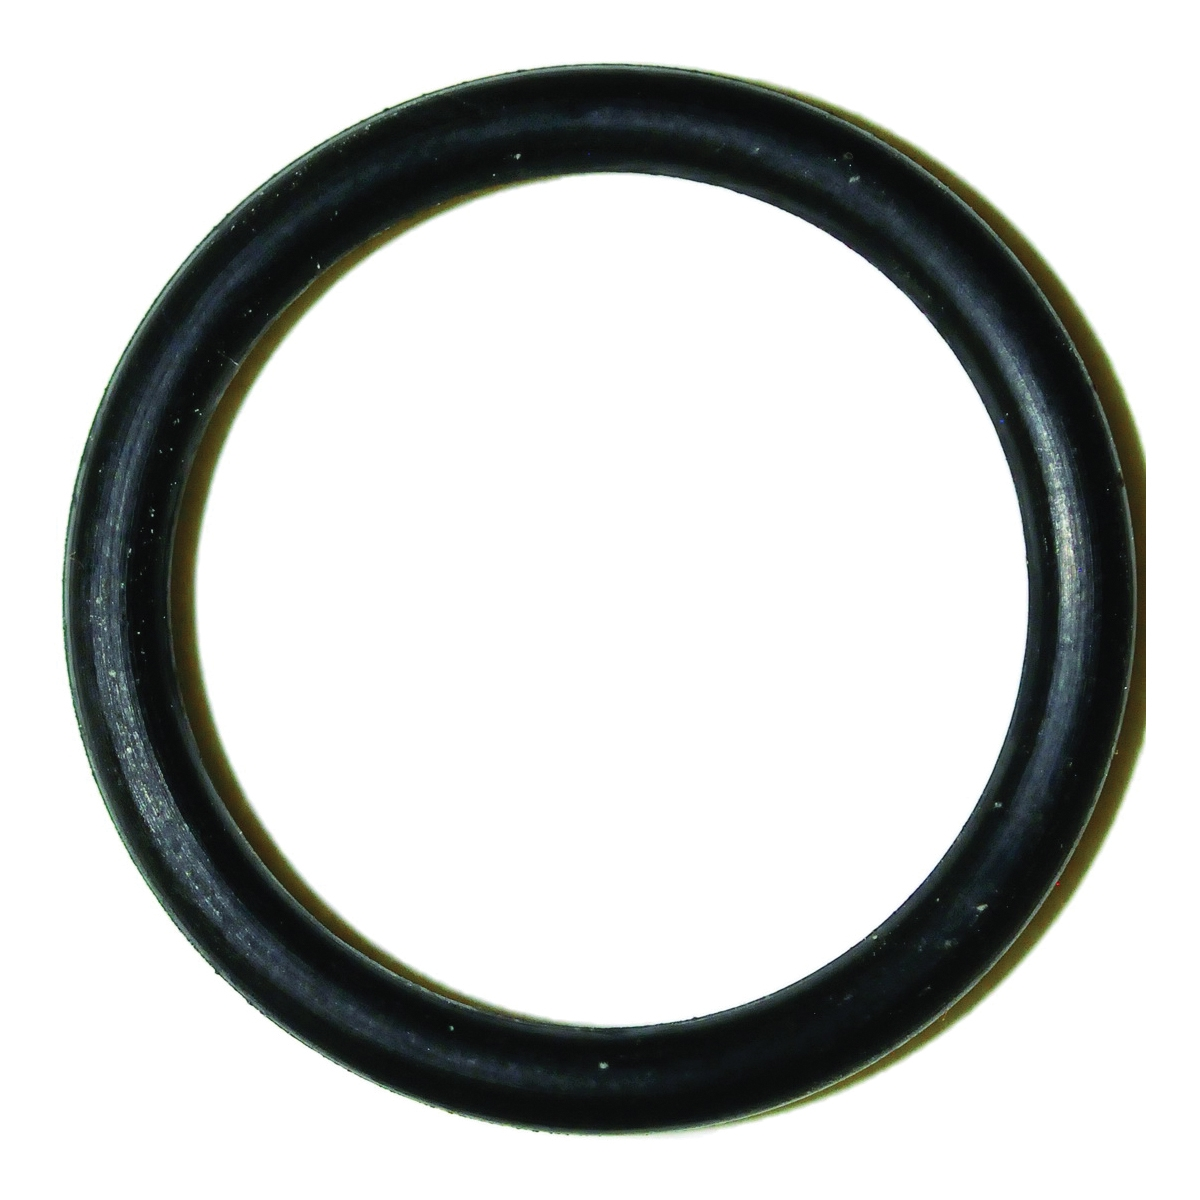 Picture of Danco 35714B Faucet O-Ring, #80, 41/64 in ID x 51/64 in OD Dia, 5/64 in Thick, Buna-N